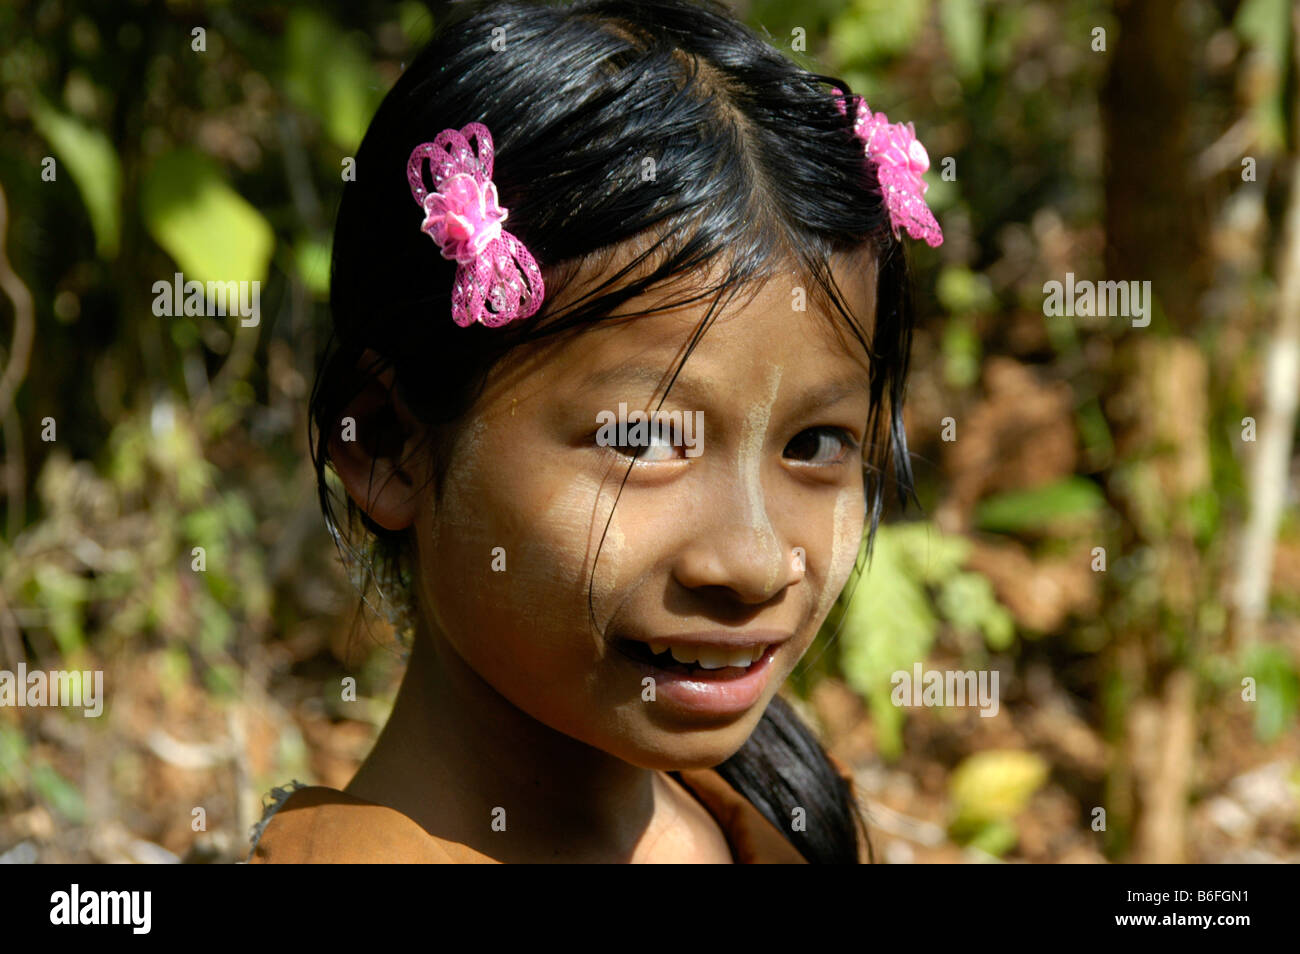 Smiling girl wearing bright pink hair-clips, portrait, Burma, Southeast Asia - Stock Image